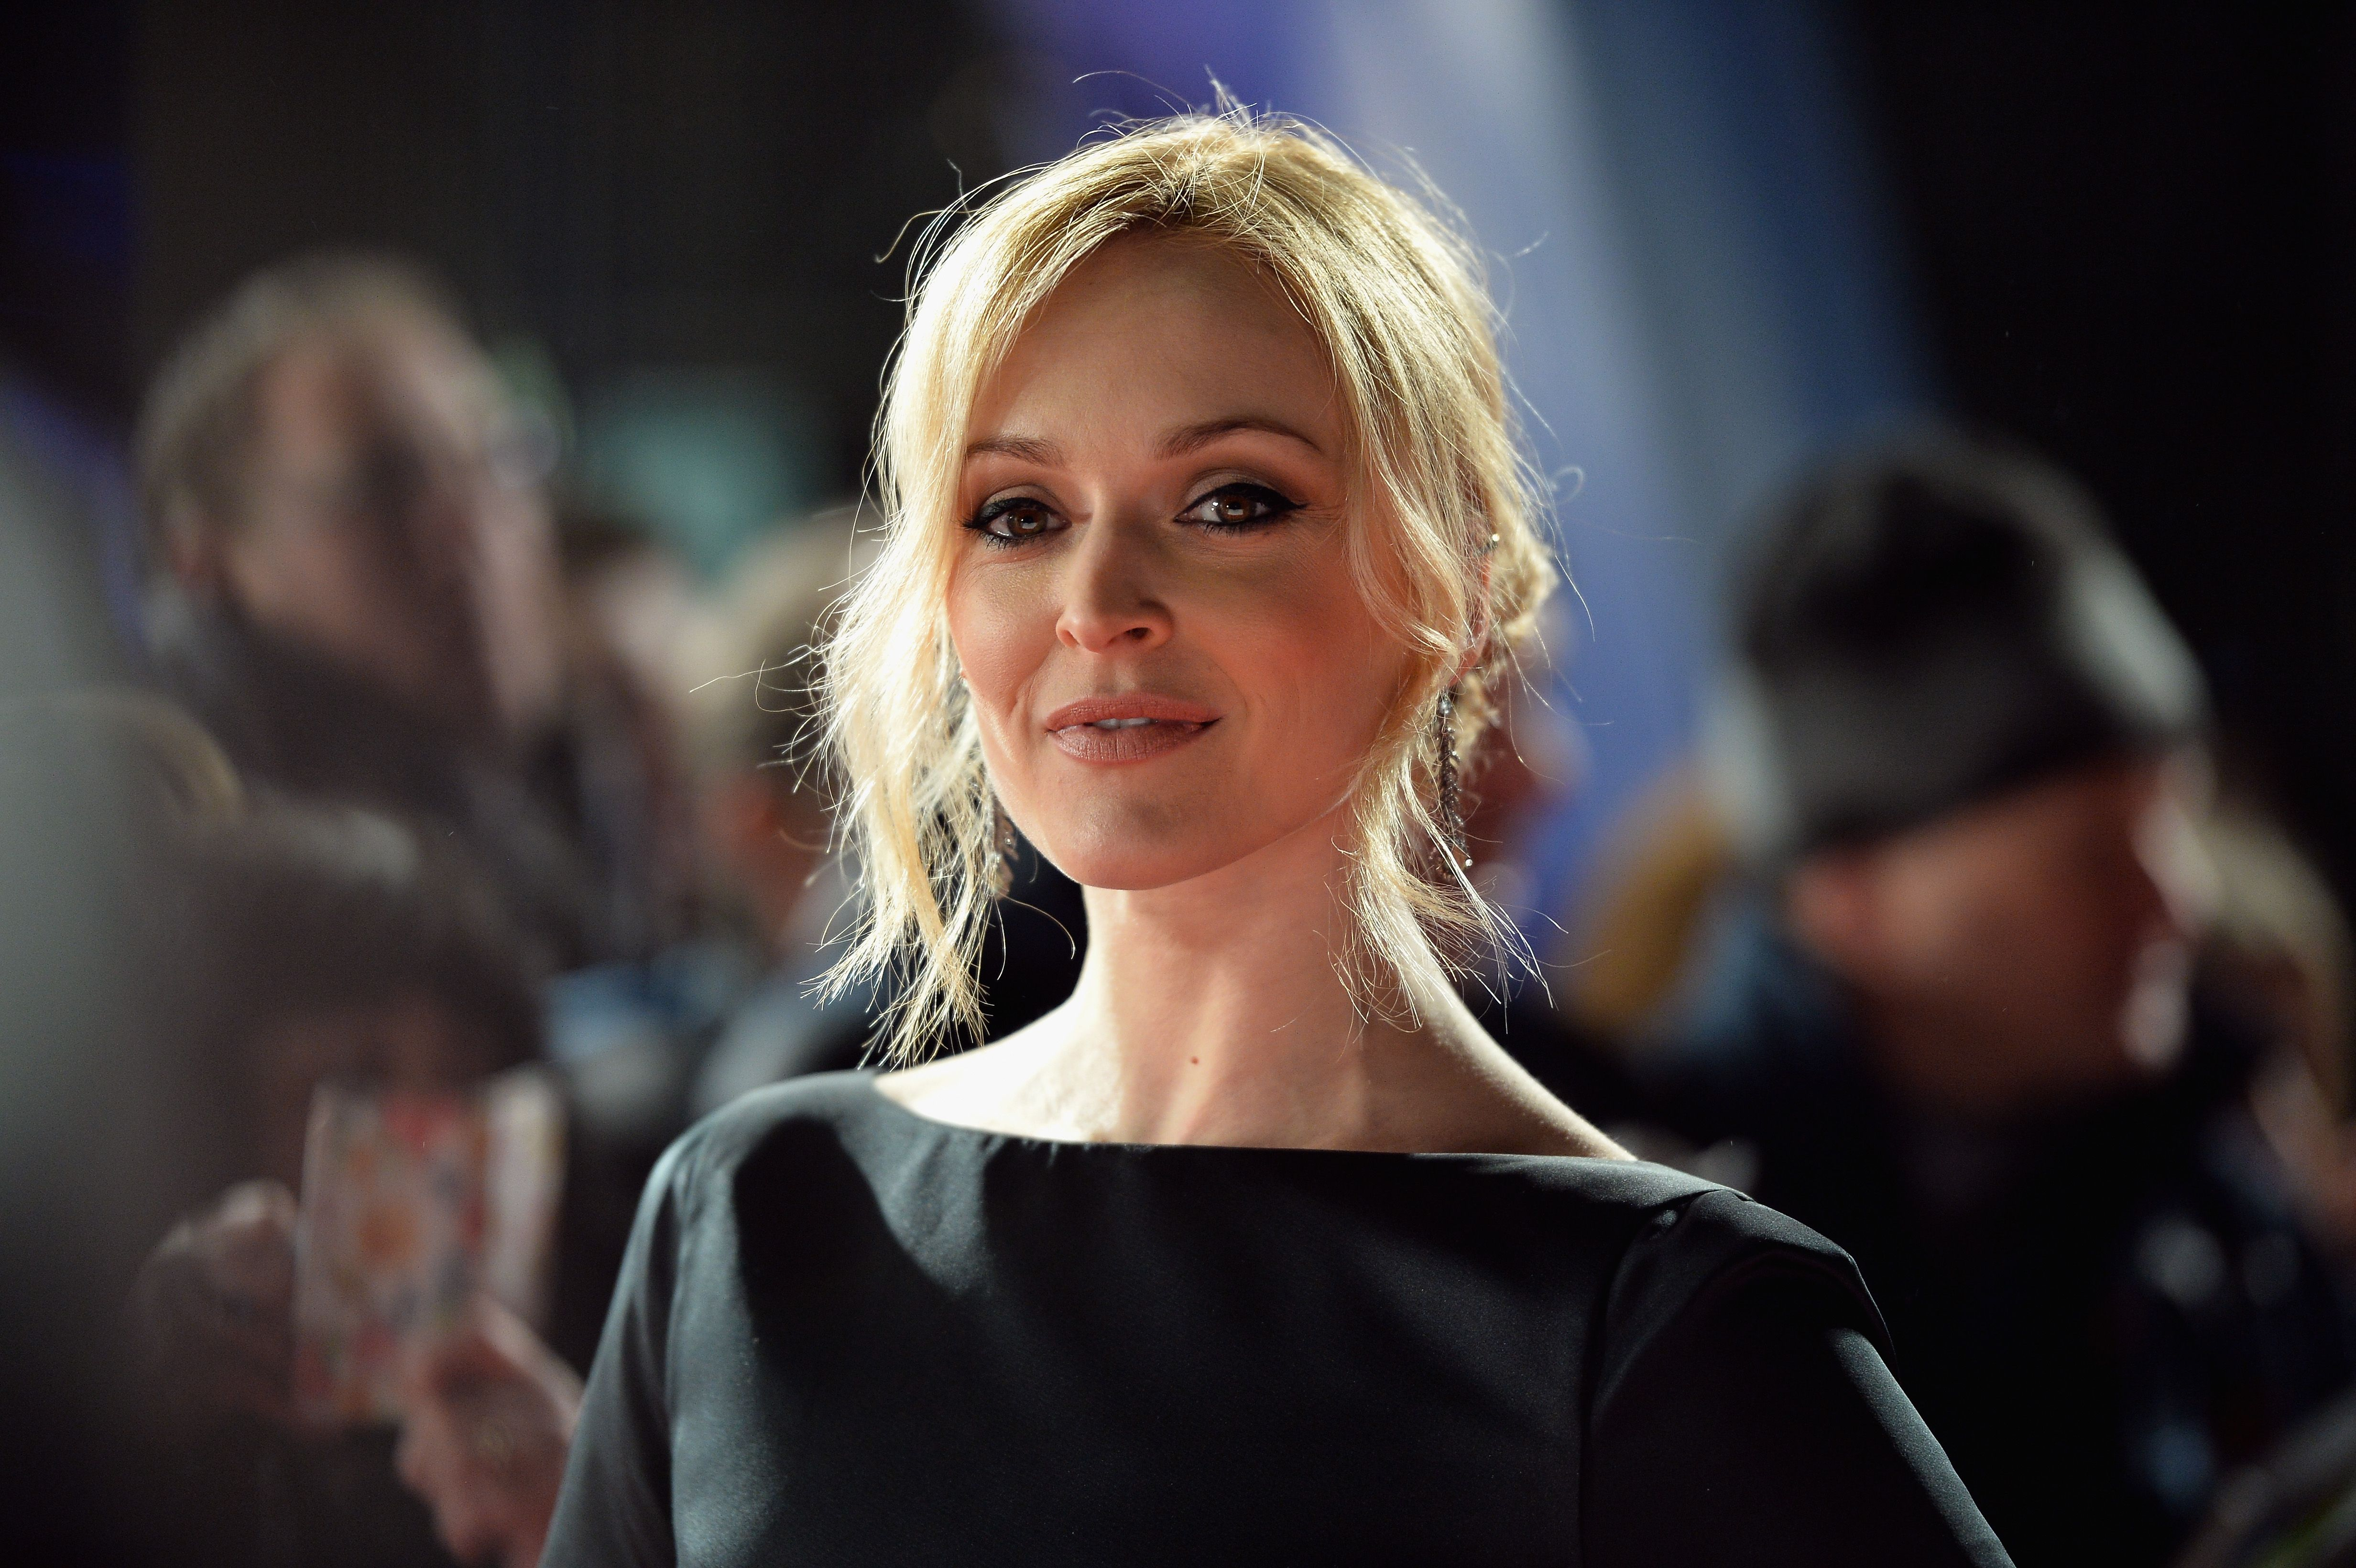 edcb31d5933c Fearne Cotton opens up about her depression 'warning signs'